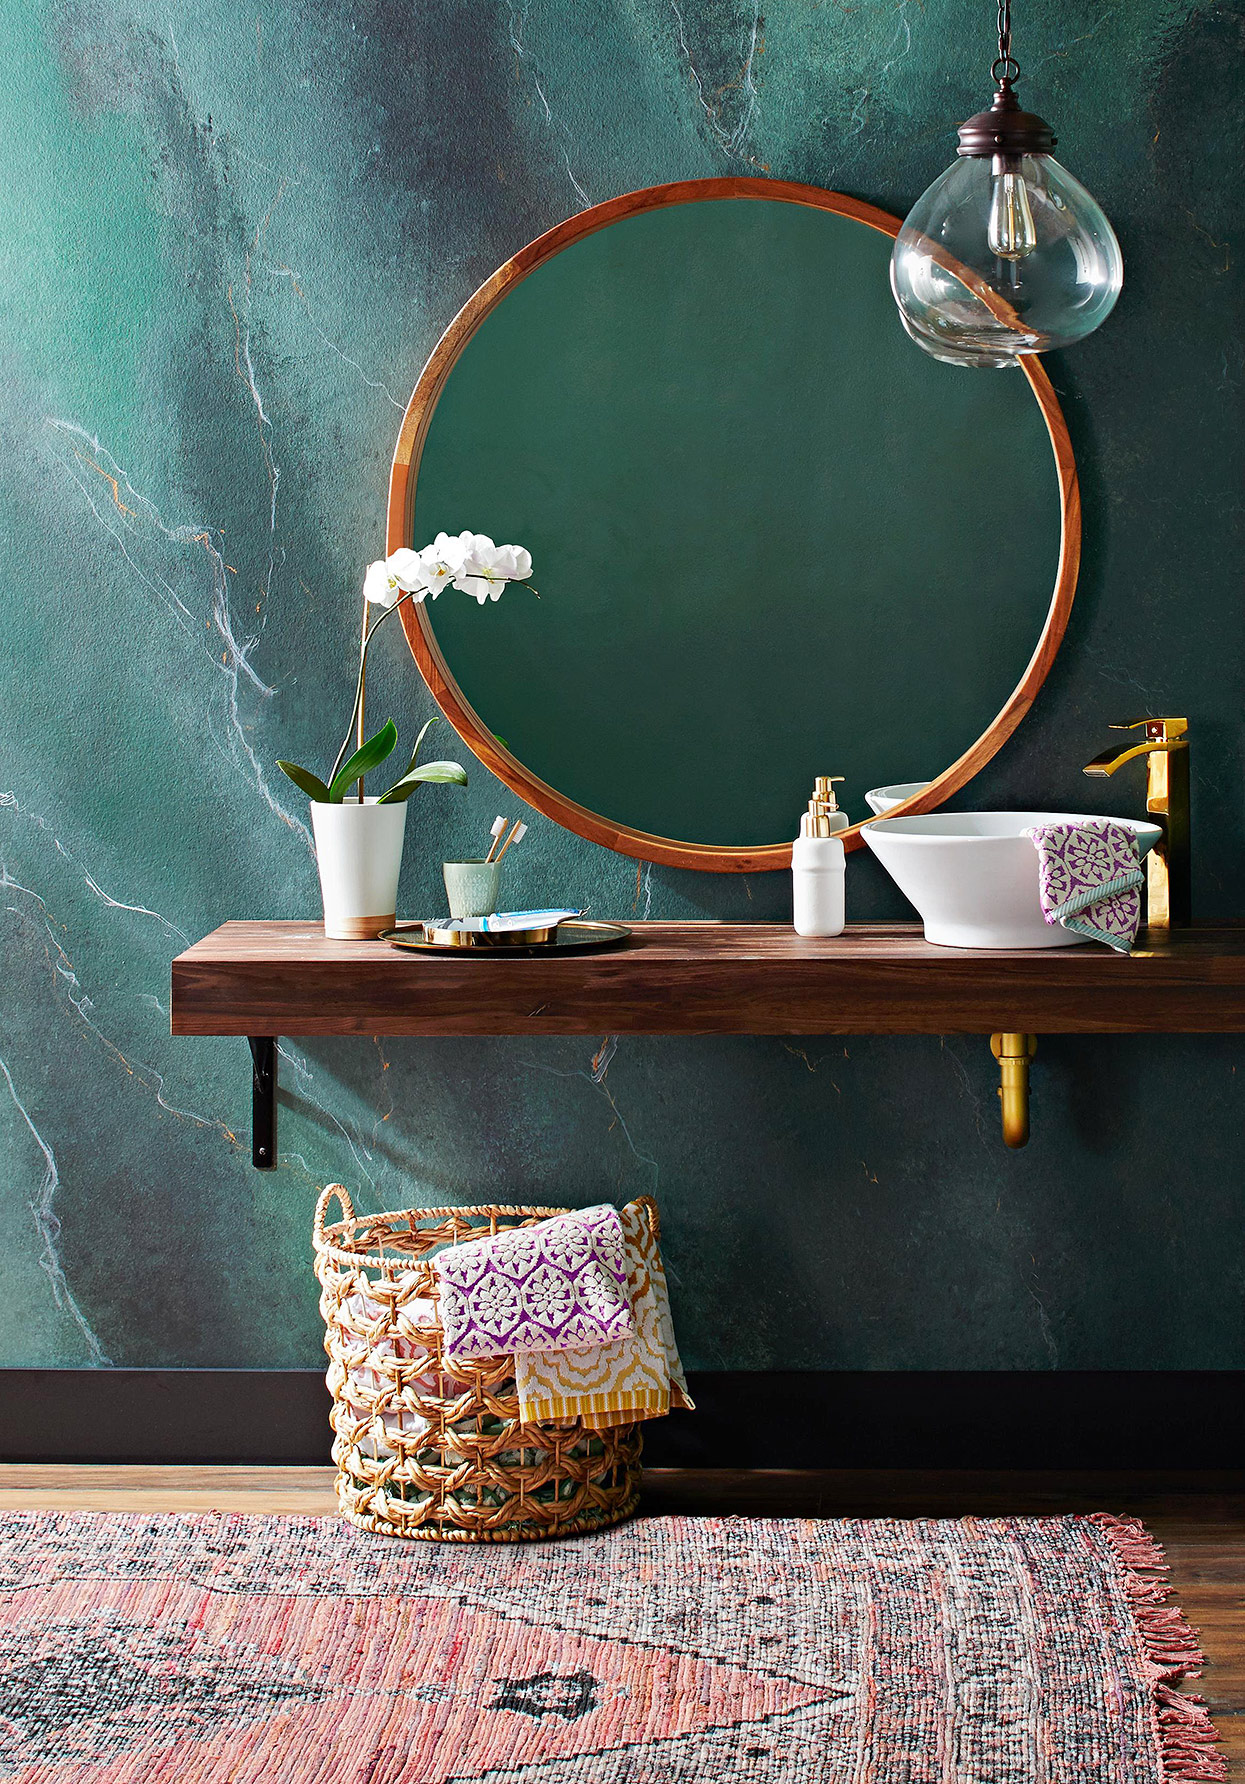 bohemian-style bathroom vanity with green marbled wall effect